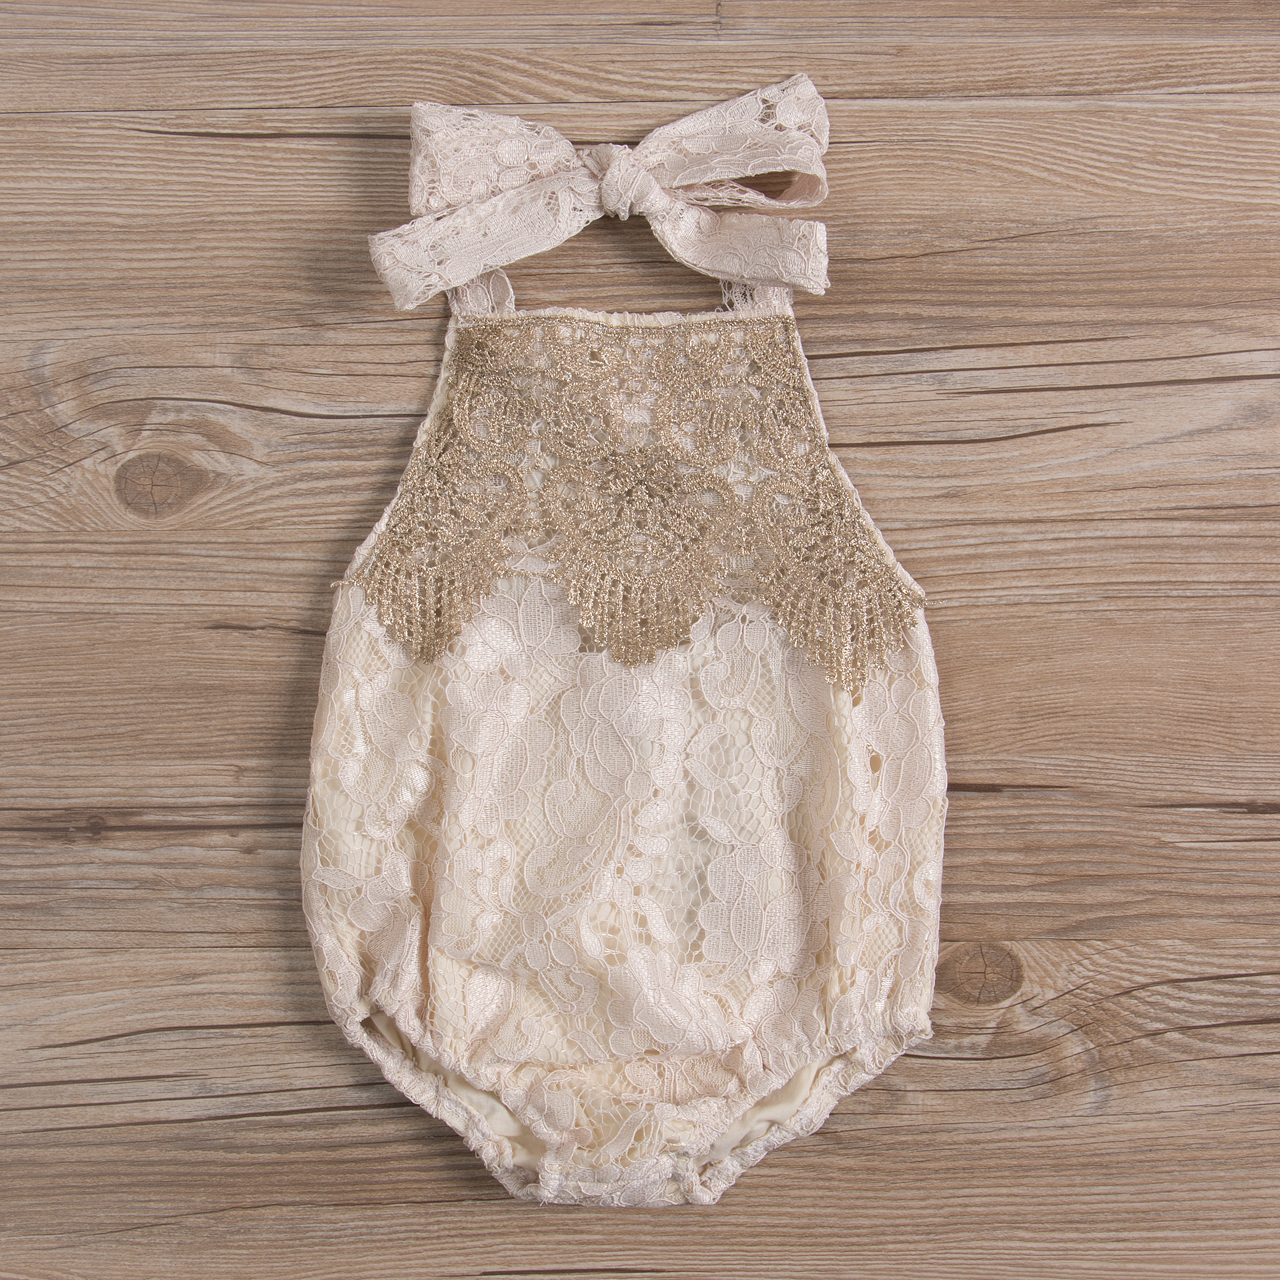 Lovely Newborn Toddler Infant Baby Girl Rompers Summer Sleeveless Backless Lace Jumpsuit Romper Baby Girls Clothes Lovely Newborn Toddler Infant Baby Girl Rompers Summer Sleeveless Backless Lace Jumpsuit Romper Baby Girls Clothes Sunsuit